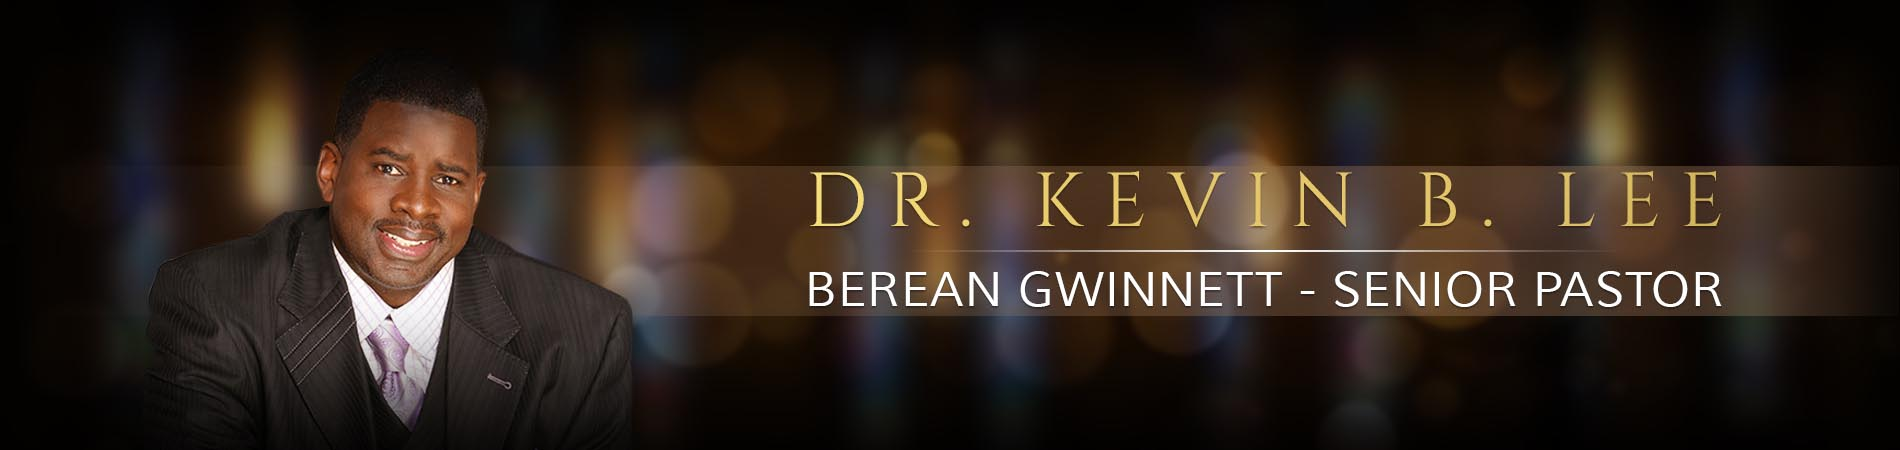 Dr Kevin B Lee - Berean Christian Church - Gwinett Senior Pastor